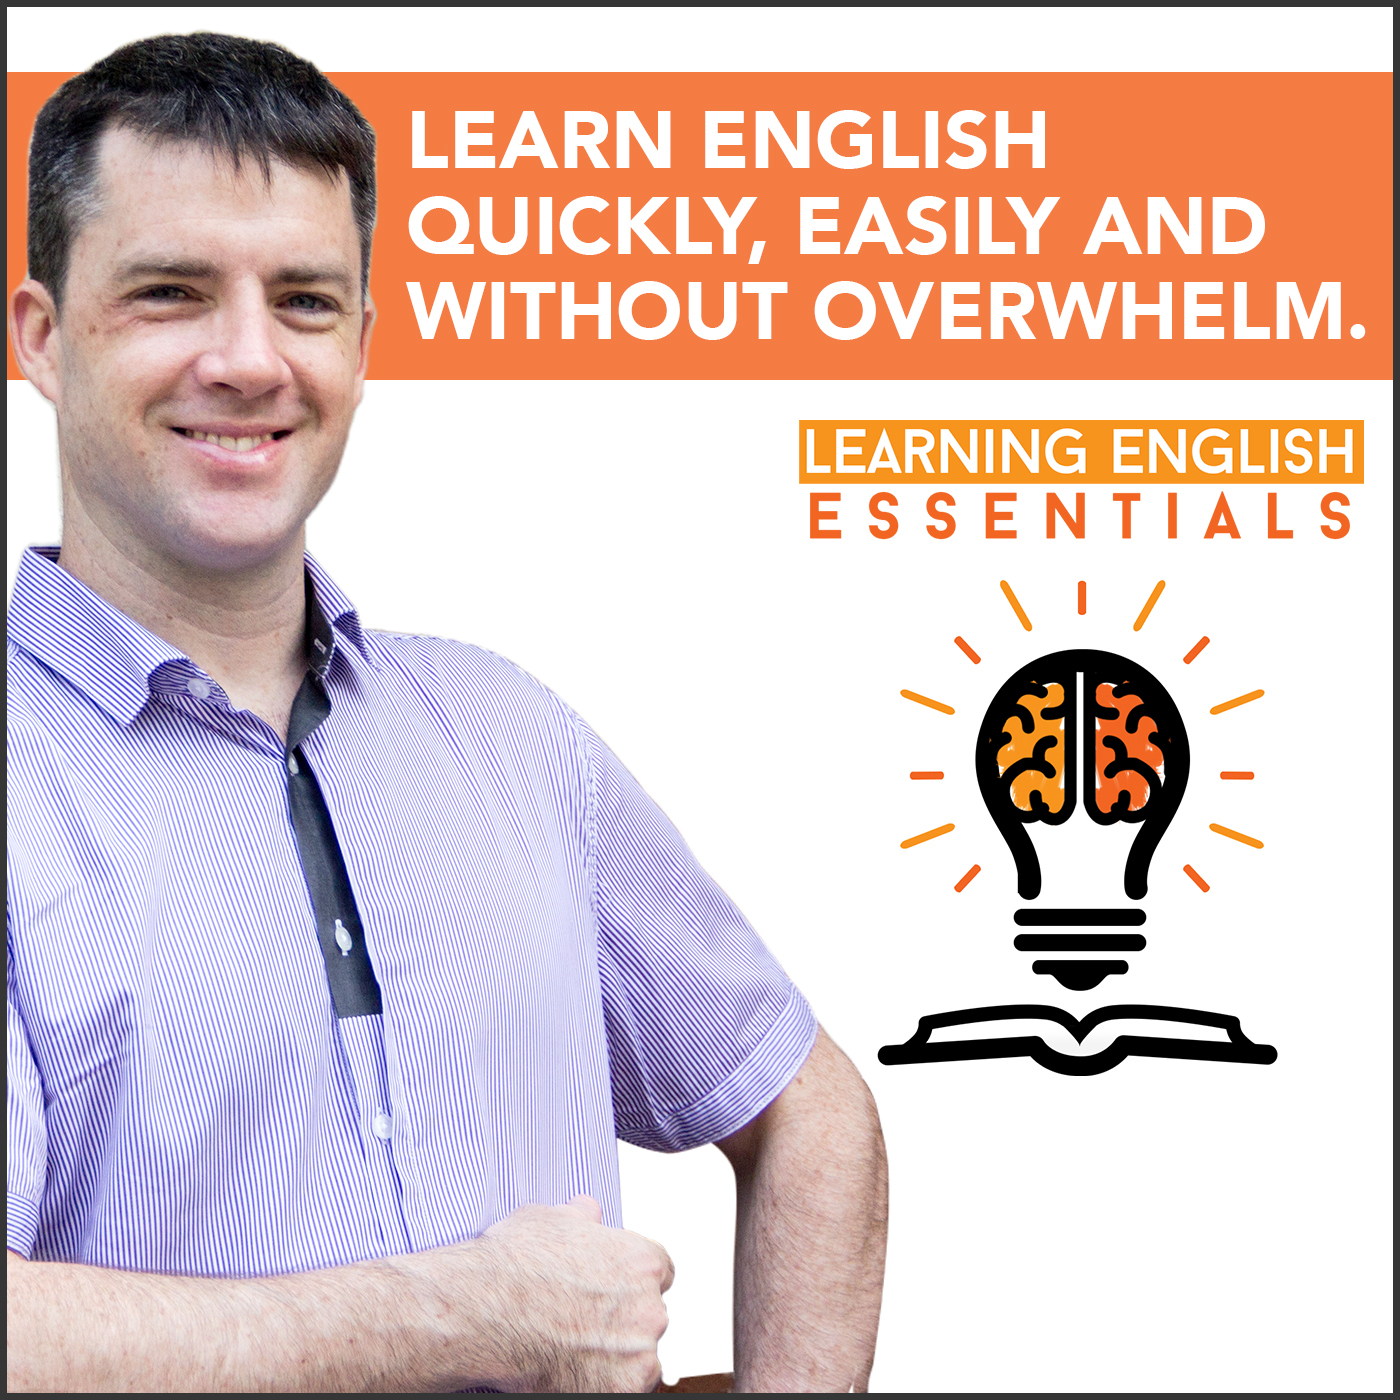 Learning English Essentials Podcast | Listen via Stitcher